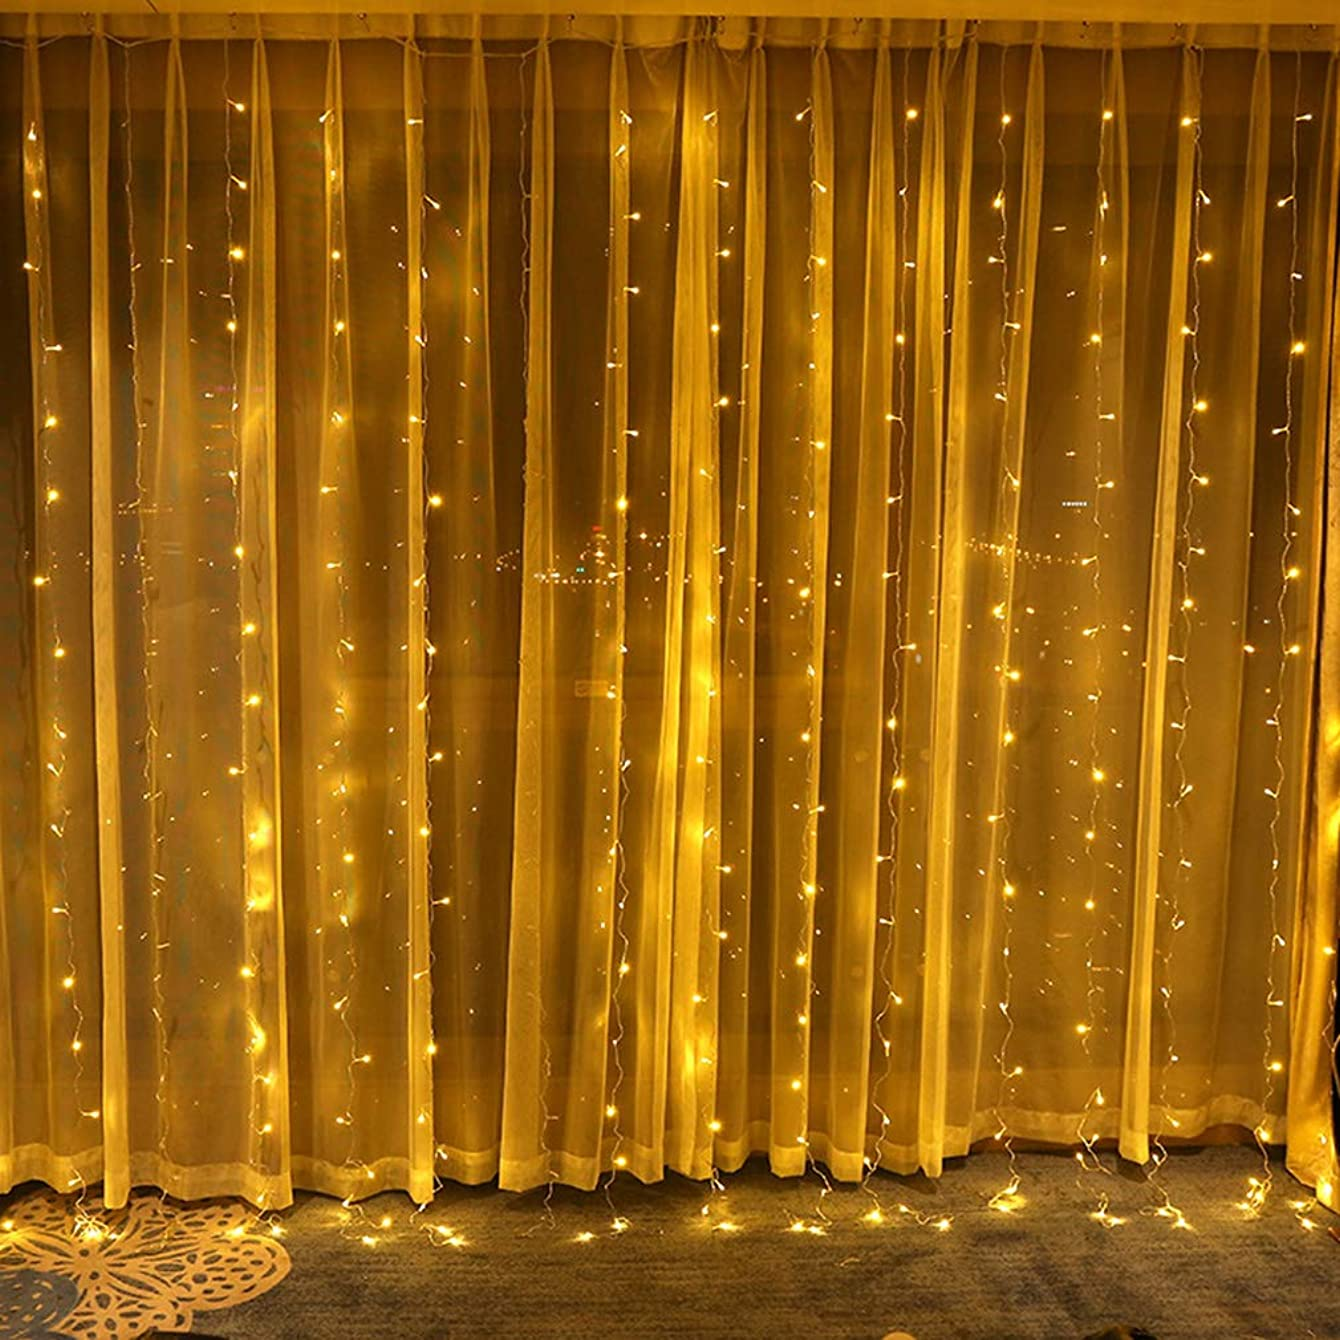 Jefferson Curtain Icicle Lights Outdoor Indoor Fairy String Lights for Party Christmas Wedding Backdrops Home Window Patio Lawn Garden Decorative Starry Light 304 LED 9.8ftx9.8ft 8 Modes (Warm White)